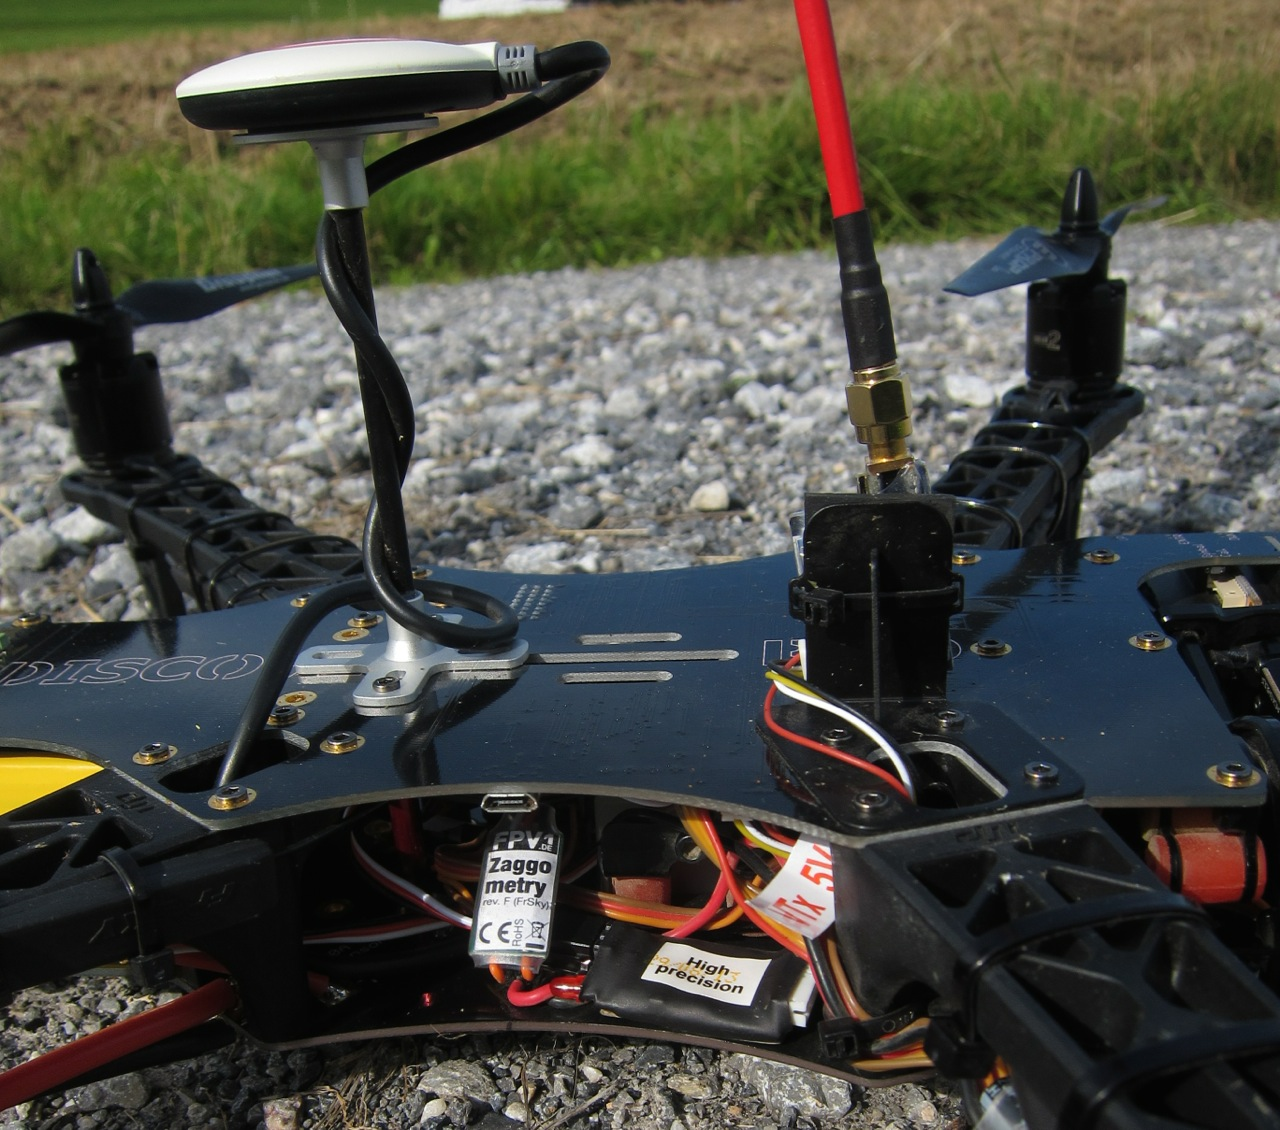 Zaggometry telemetry adapter, next to a high precision variometer, reads live GPS data from the NAZA GPS puck and transmit it over the telemetry link to the Taranis RC remote.